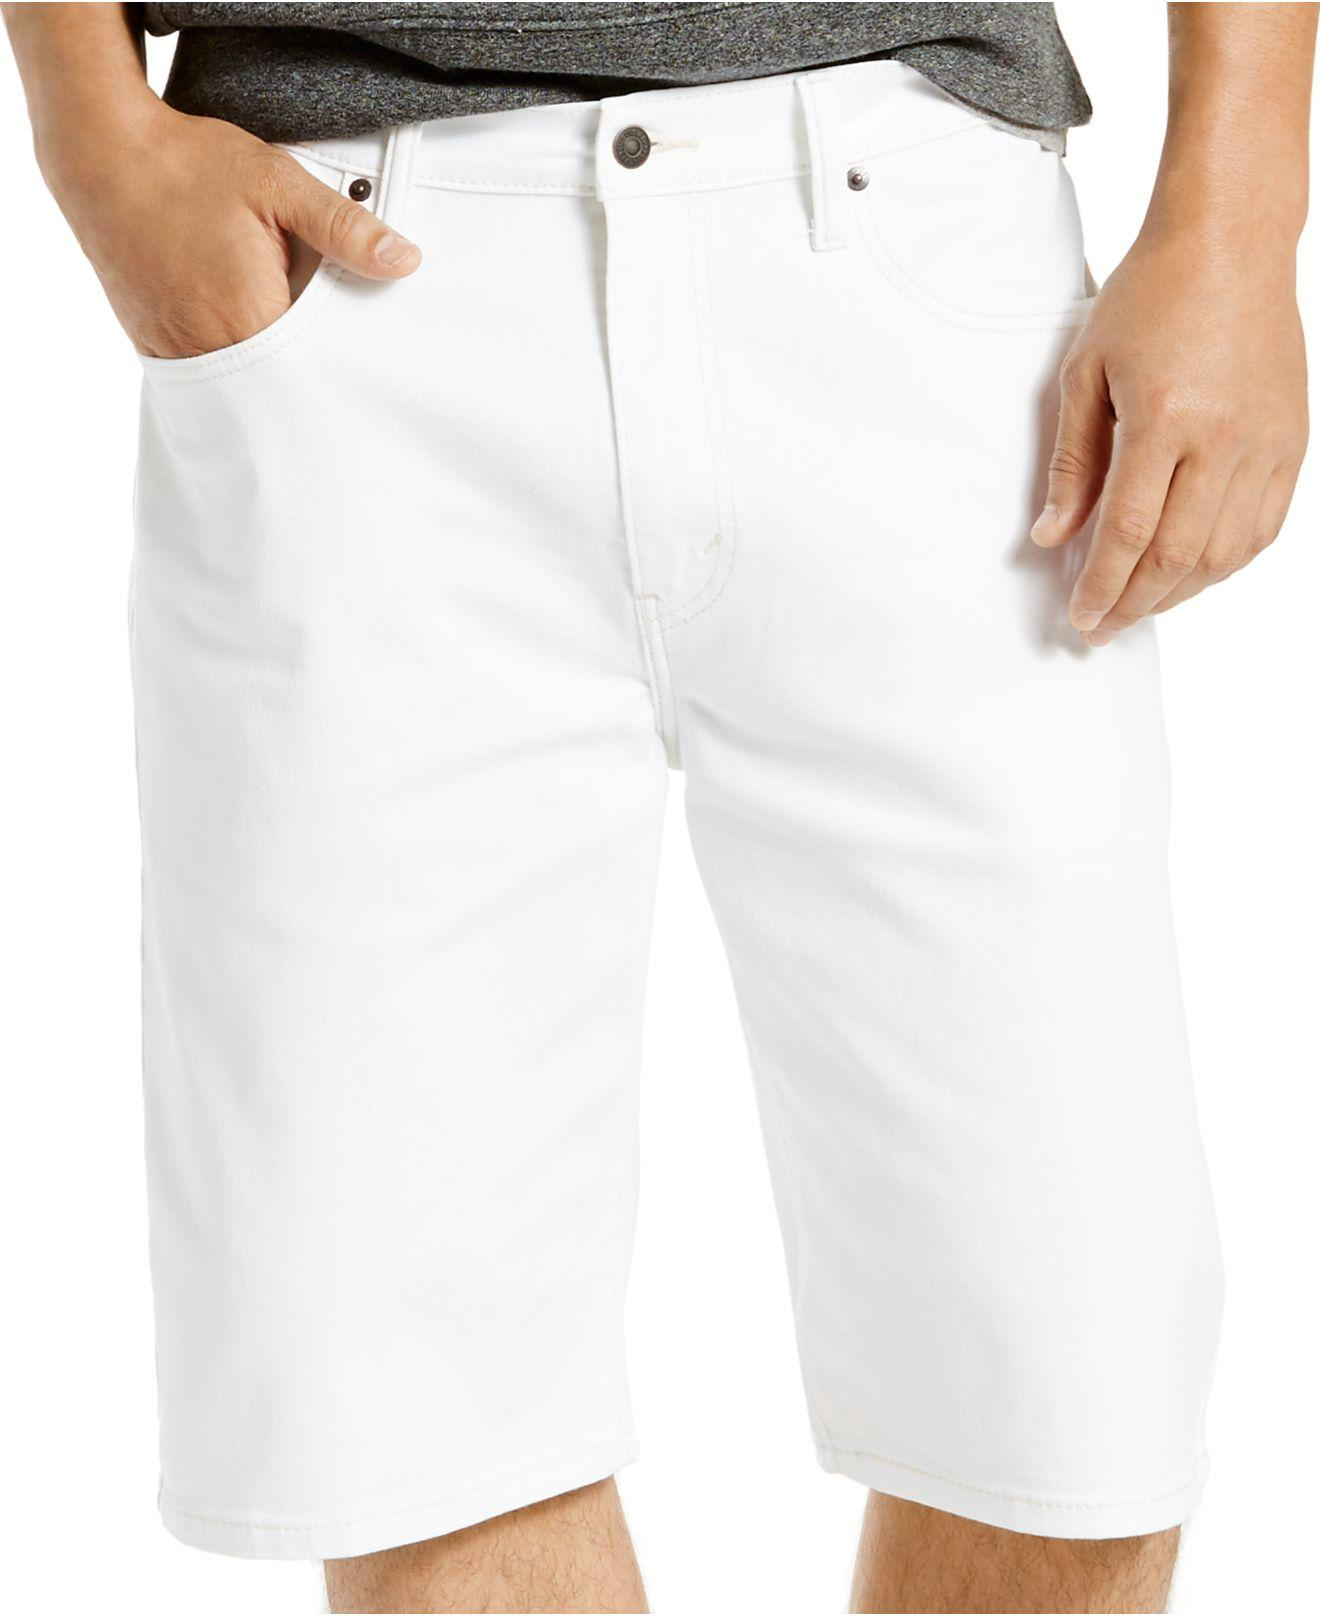 White apron macy's - Featured